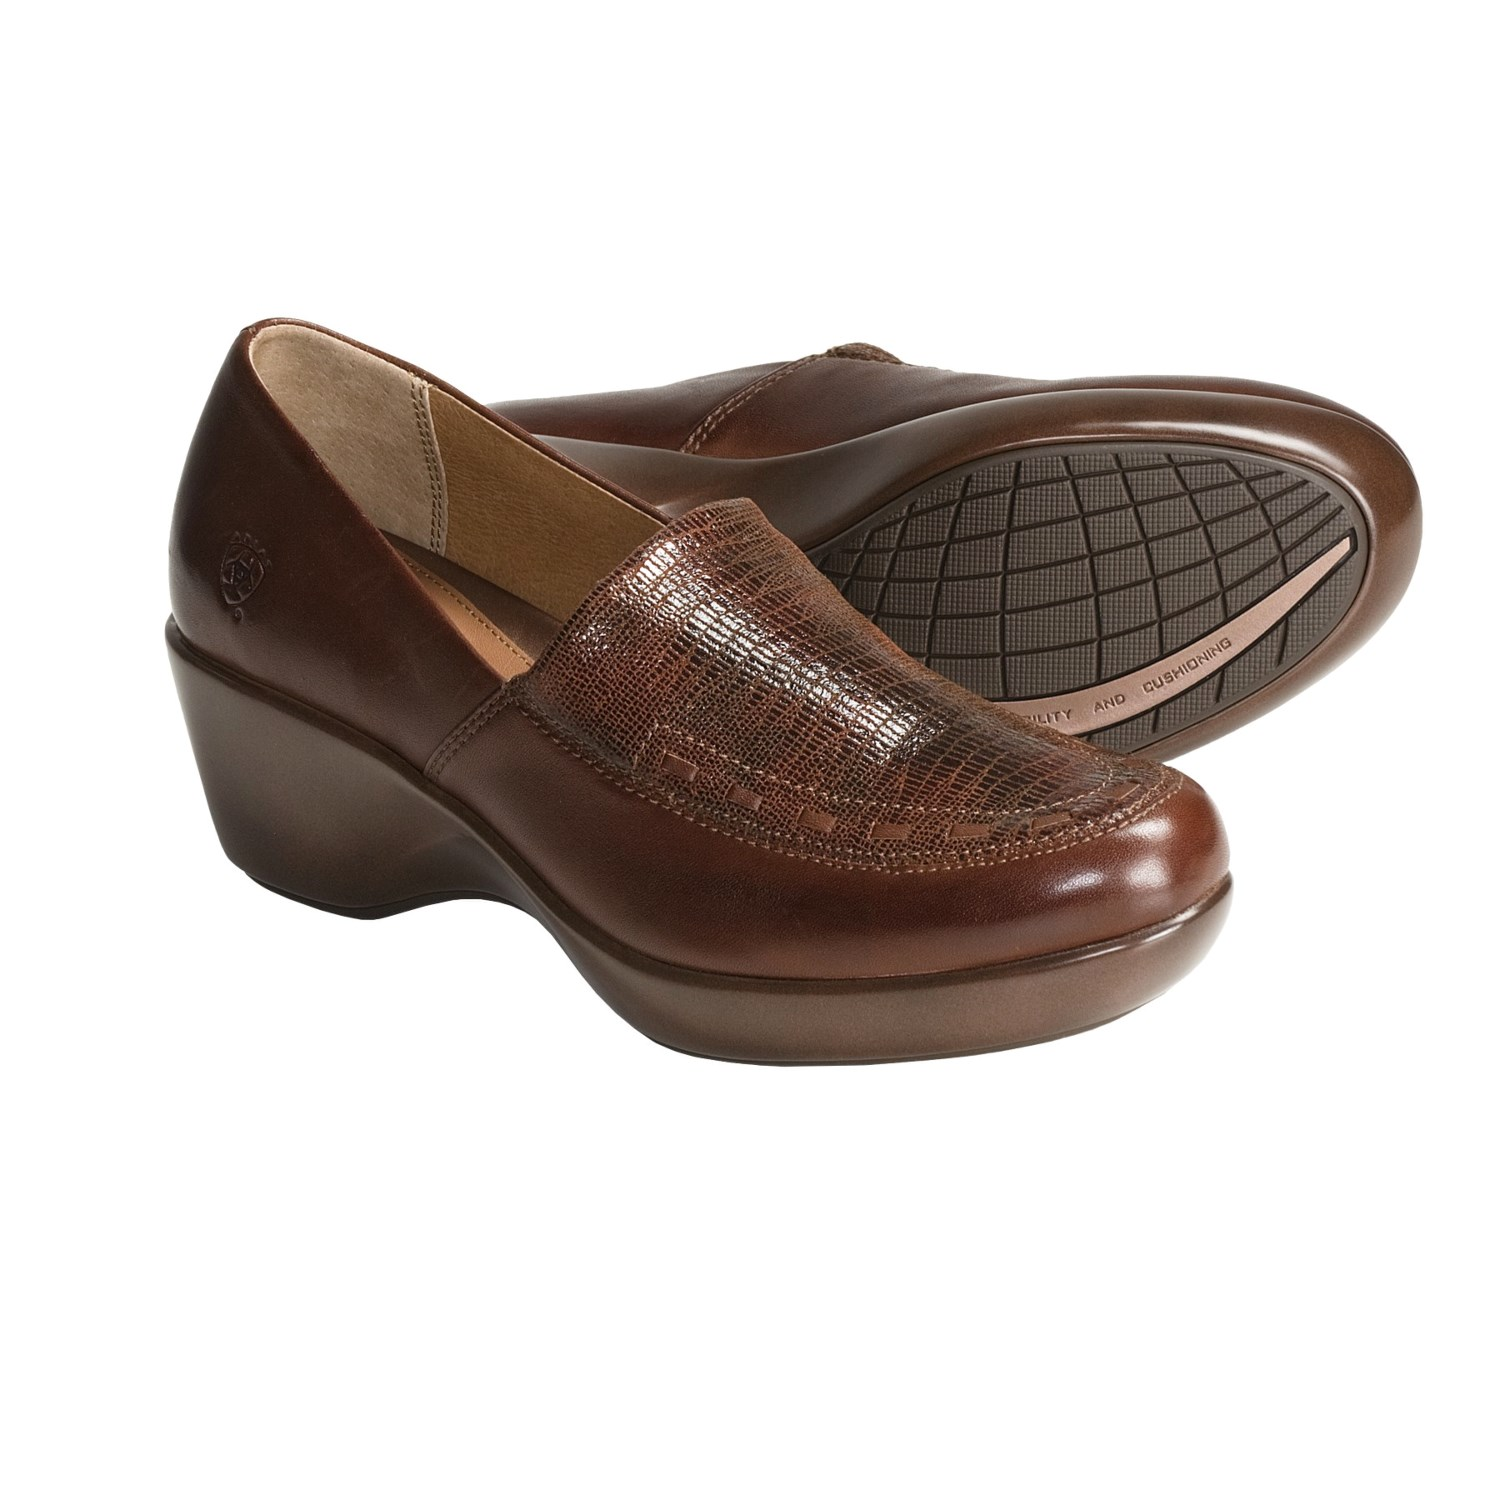 Ariat Arch Leather Shoes - Slip-Ons (For Women) in Cinnamon